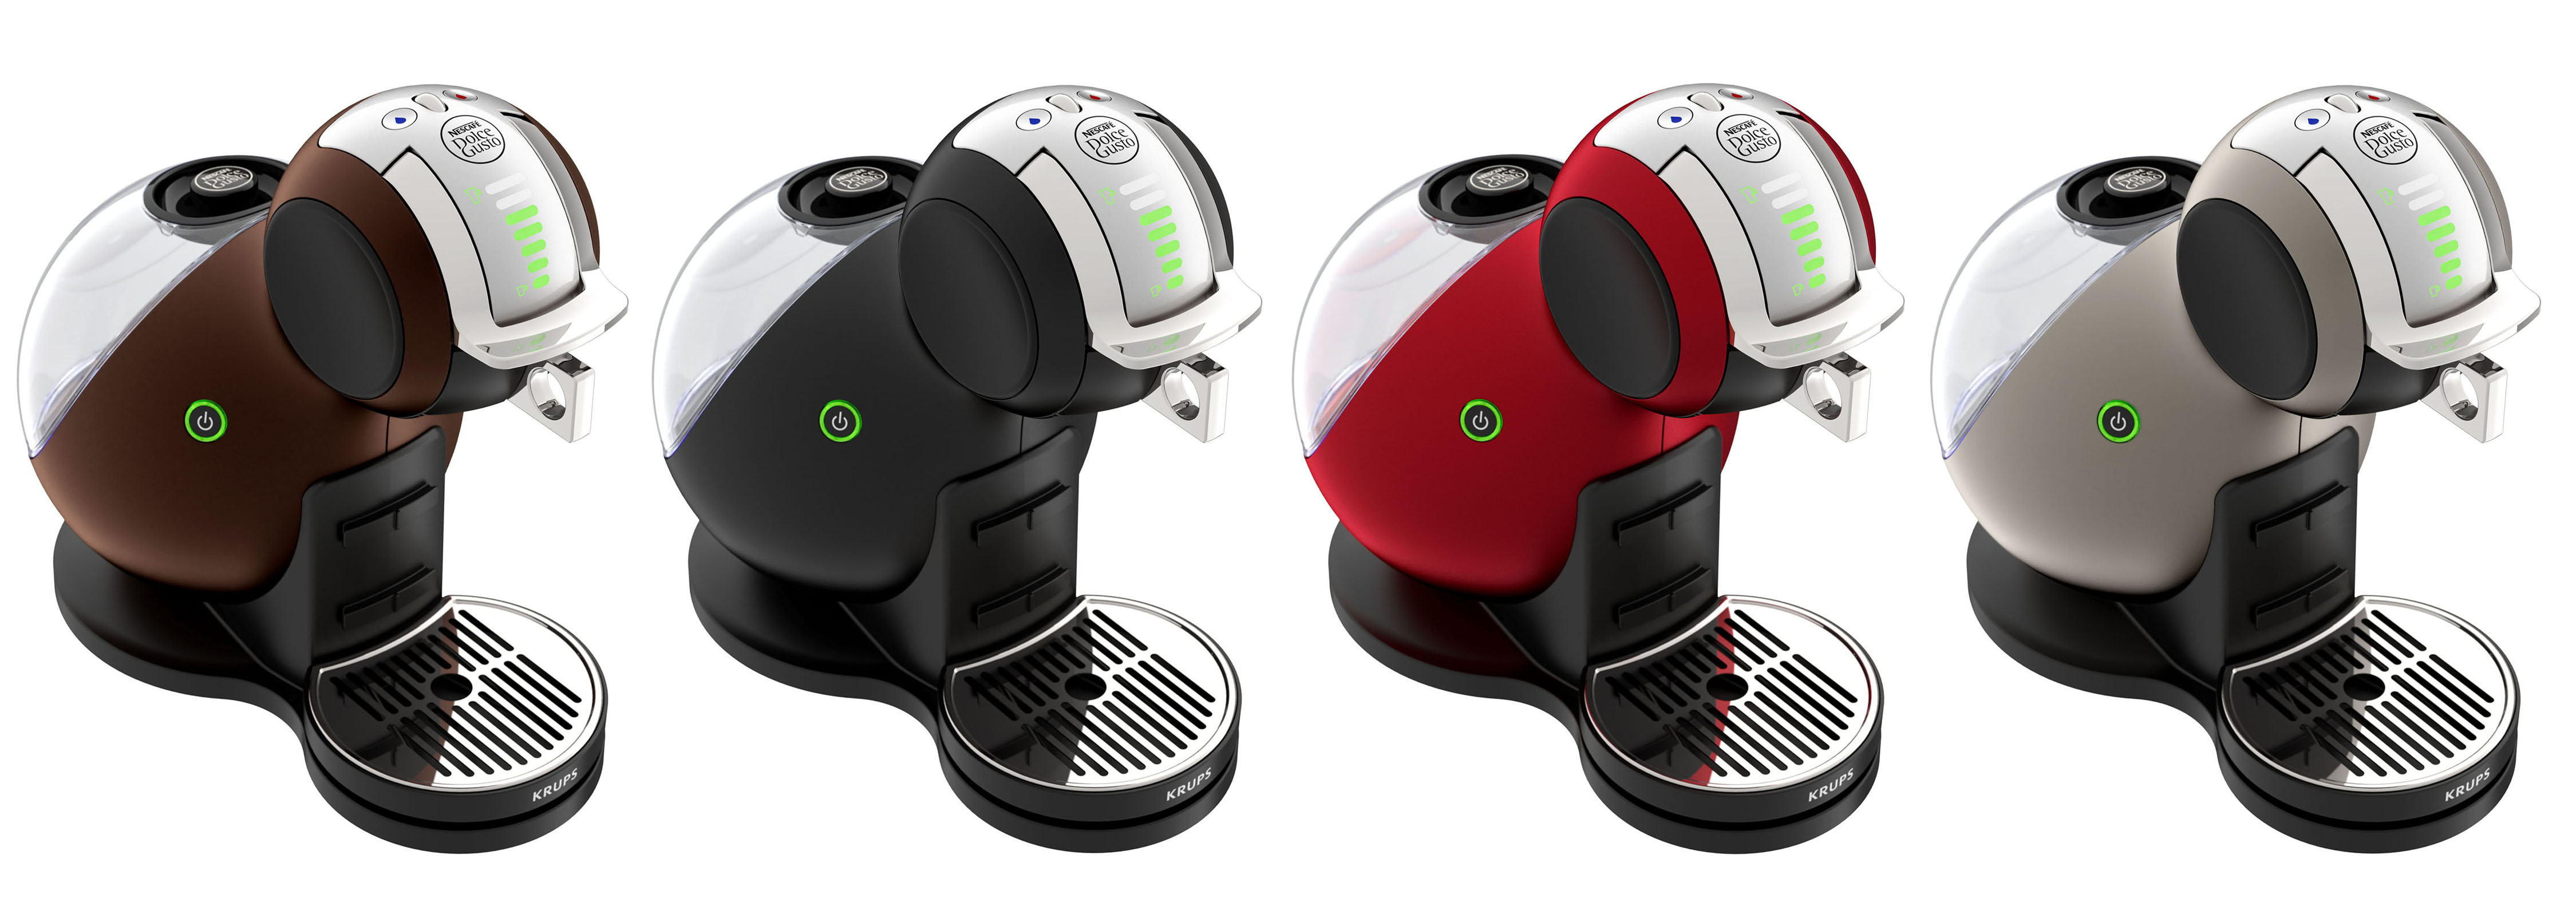 krups nescaf dolce gusto melody 3 automatik mit flow stop. Black Bedroom Furniture Sets. Home Design Ideas